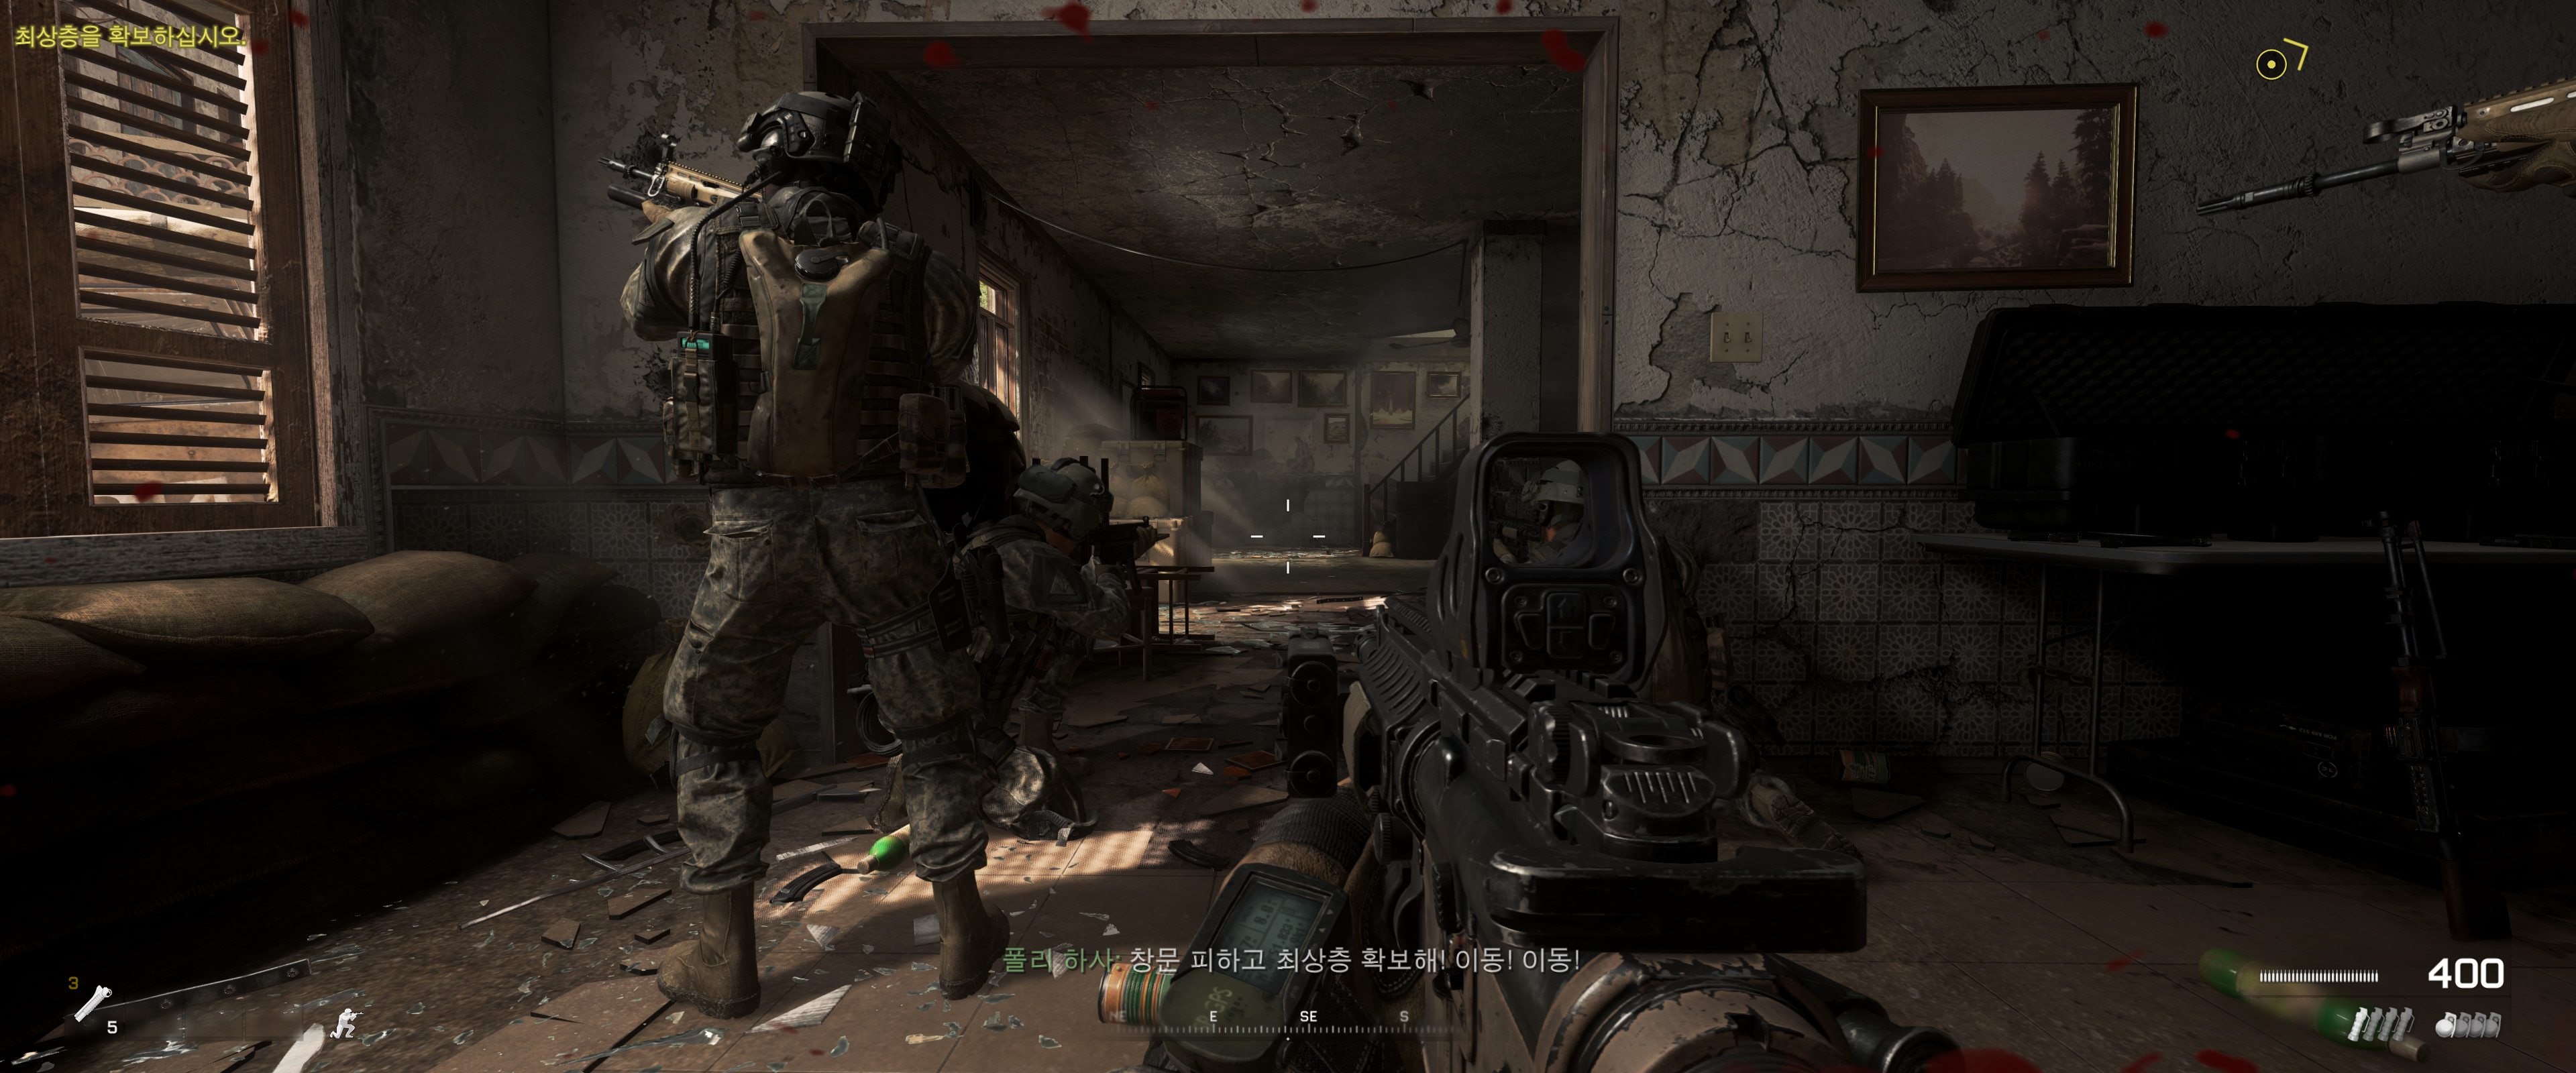 jpg_Call of Duty  Modern Warfare 2 Remastered Screenshot 2020.05.01 - 10.24.03.34.jpg